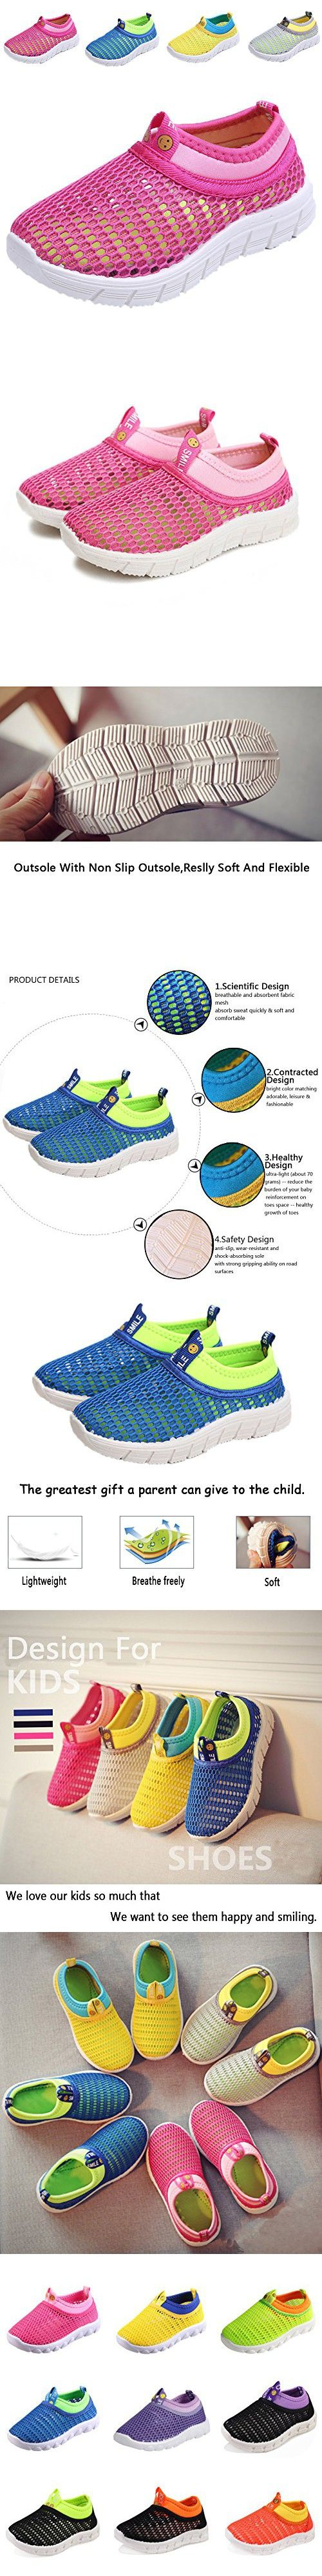 CIOR Kids Breathable Water Shoes Slip-on Sneakers For Running, Pool, Beach, Toddler / Little Kid / Big Kid,sk205pink,29